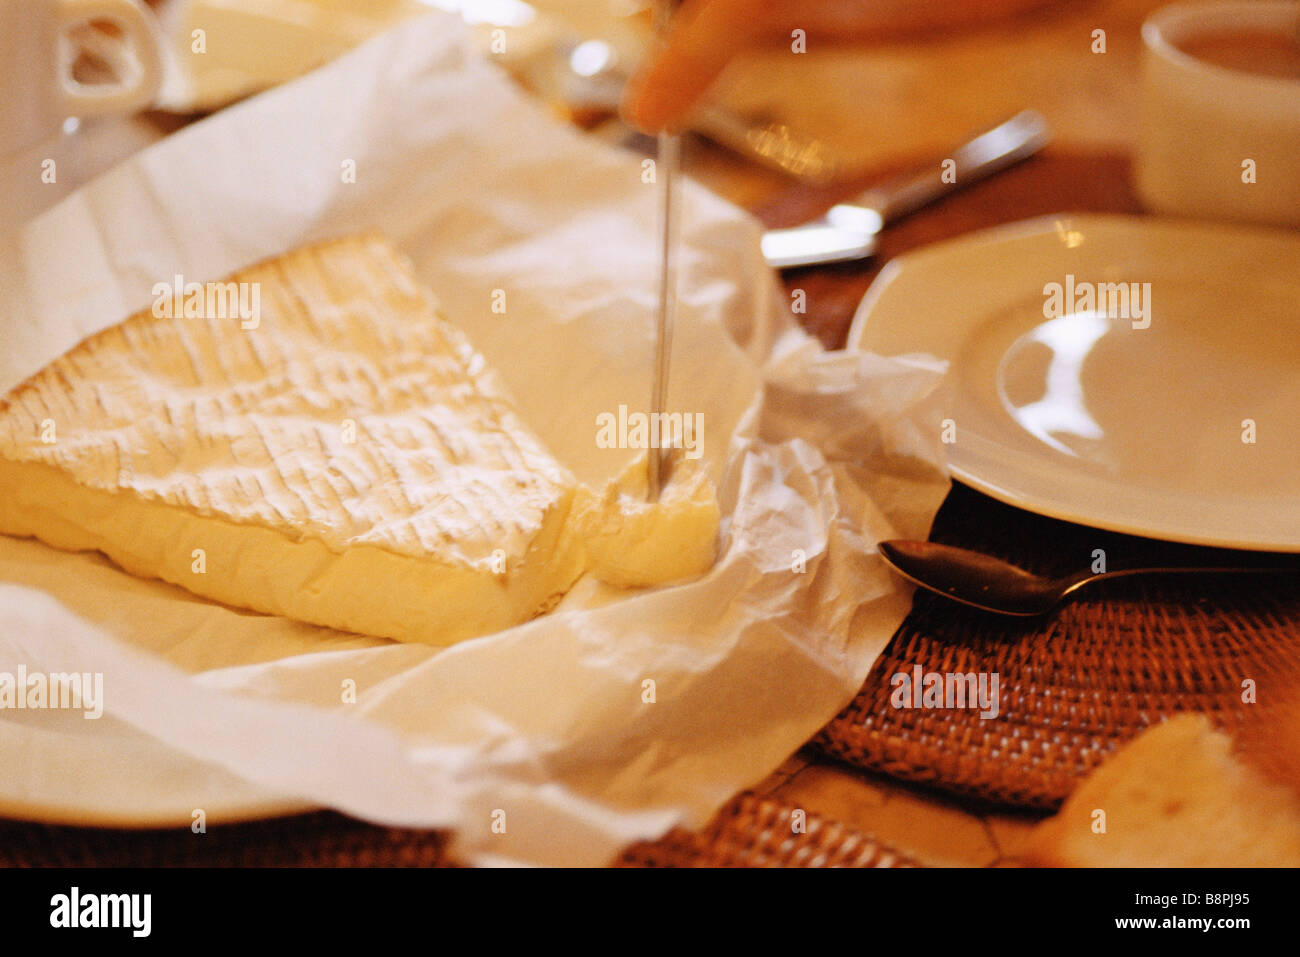 Brie on set table - Stock Image